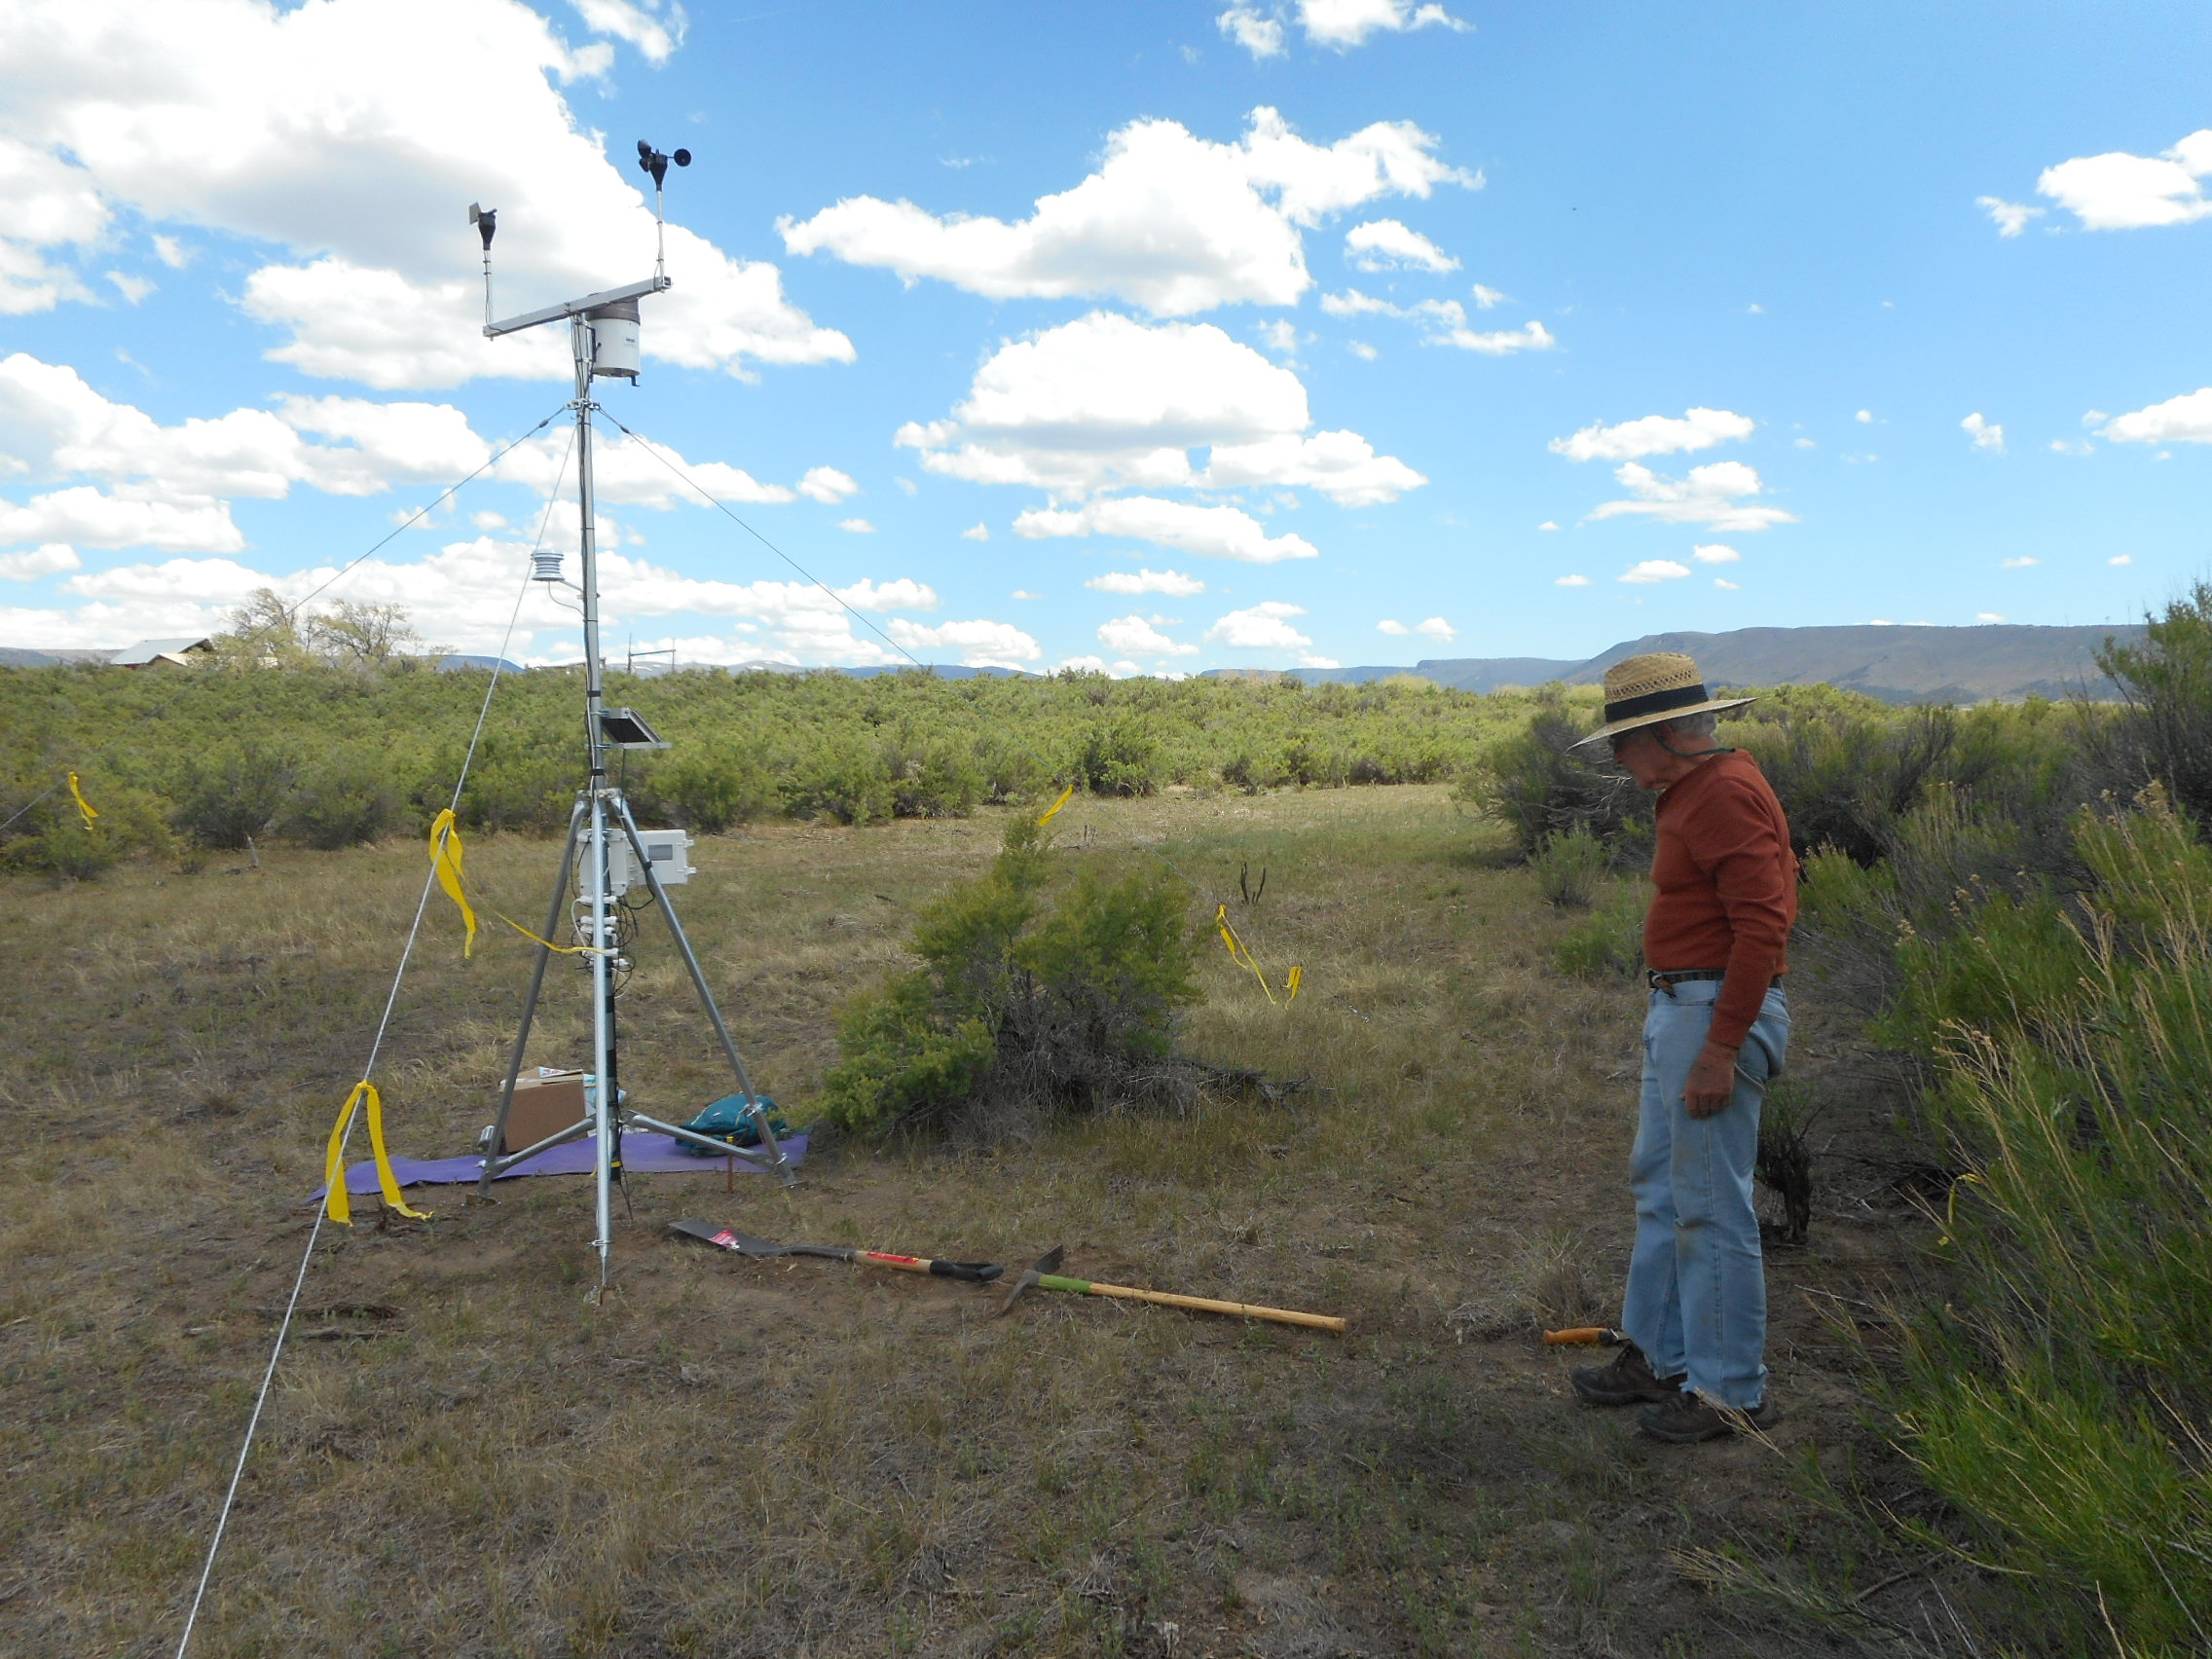 Bob Grossman helped the San Miguel Basin Gunnison Sage-grouse Working Group set up a new weather station in Dry Creek Basin, south of Naturita, Colorado.